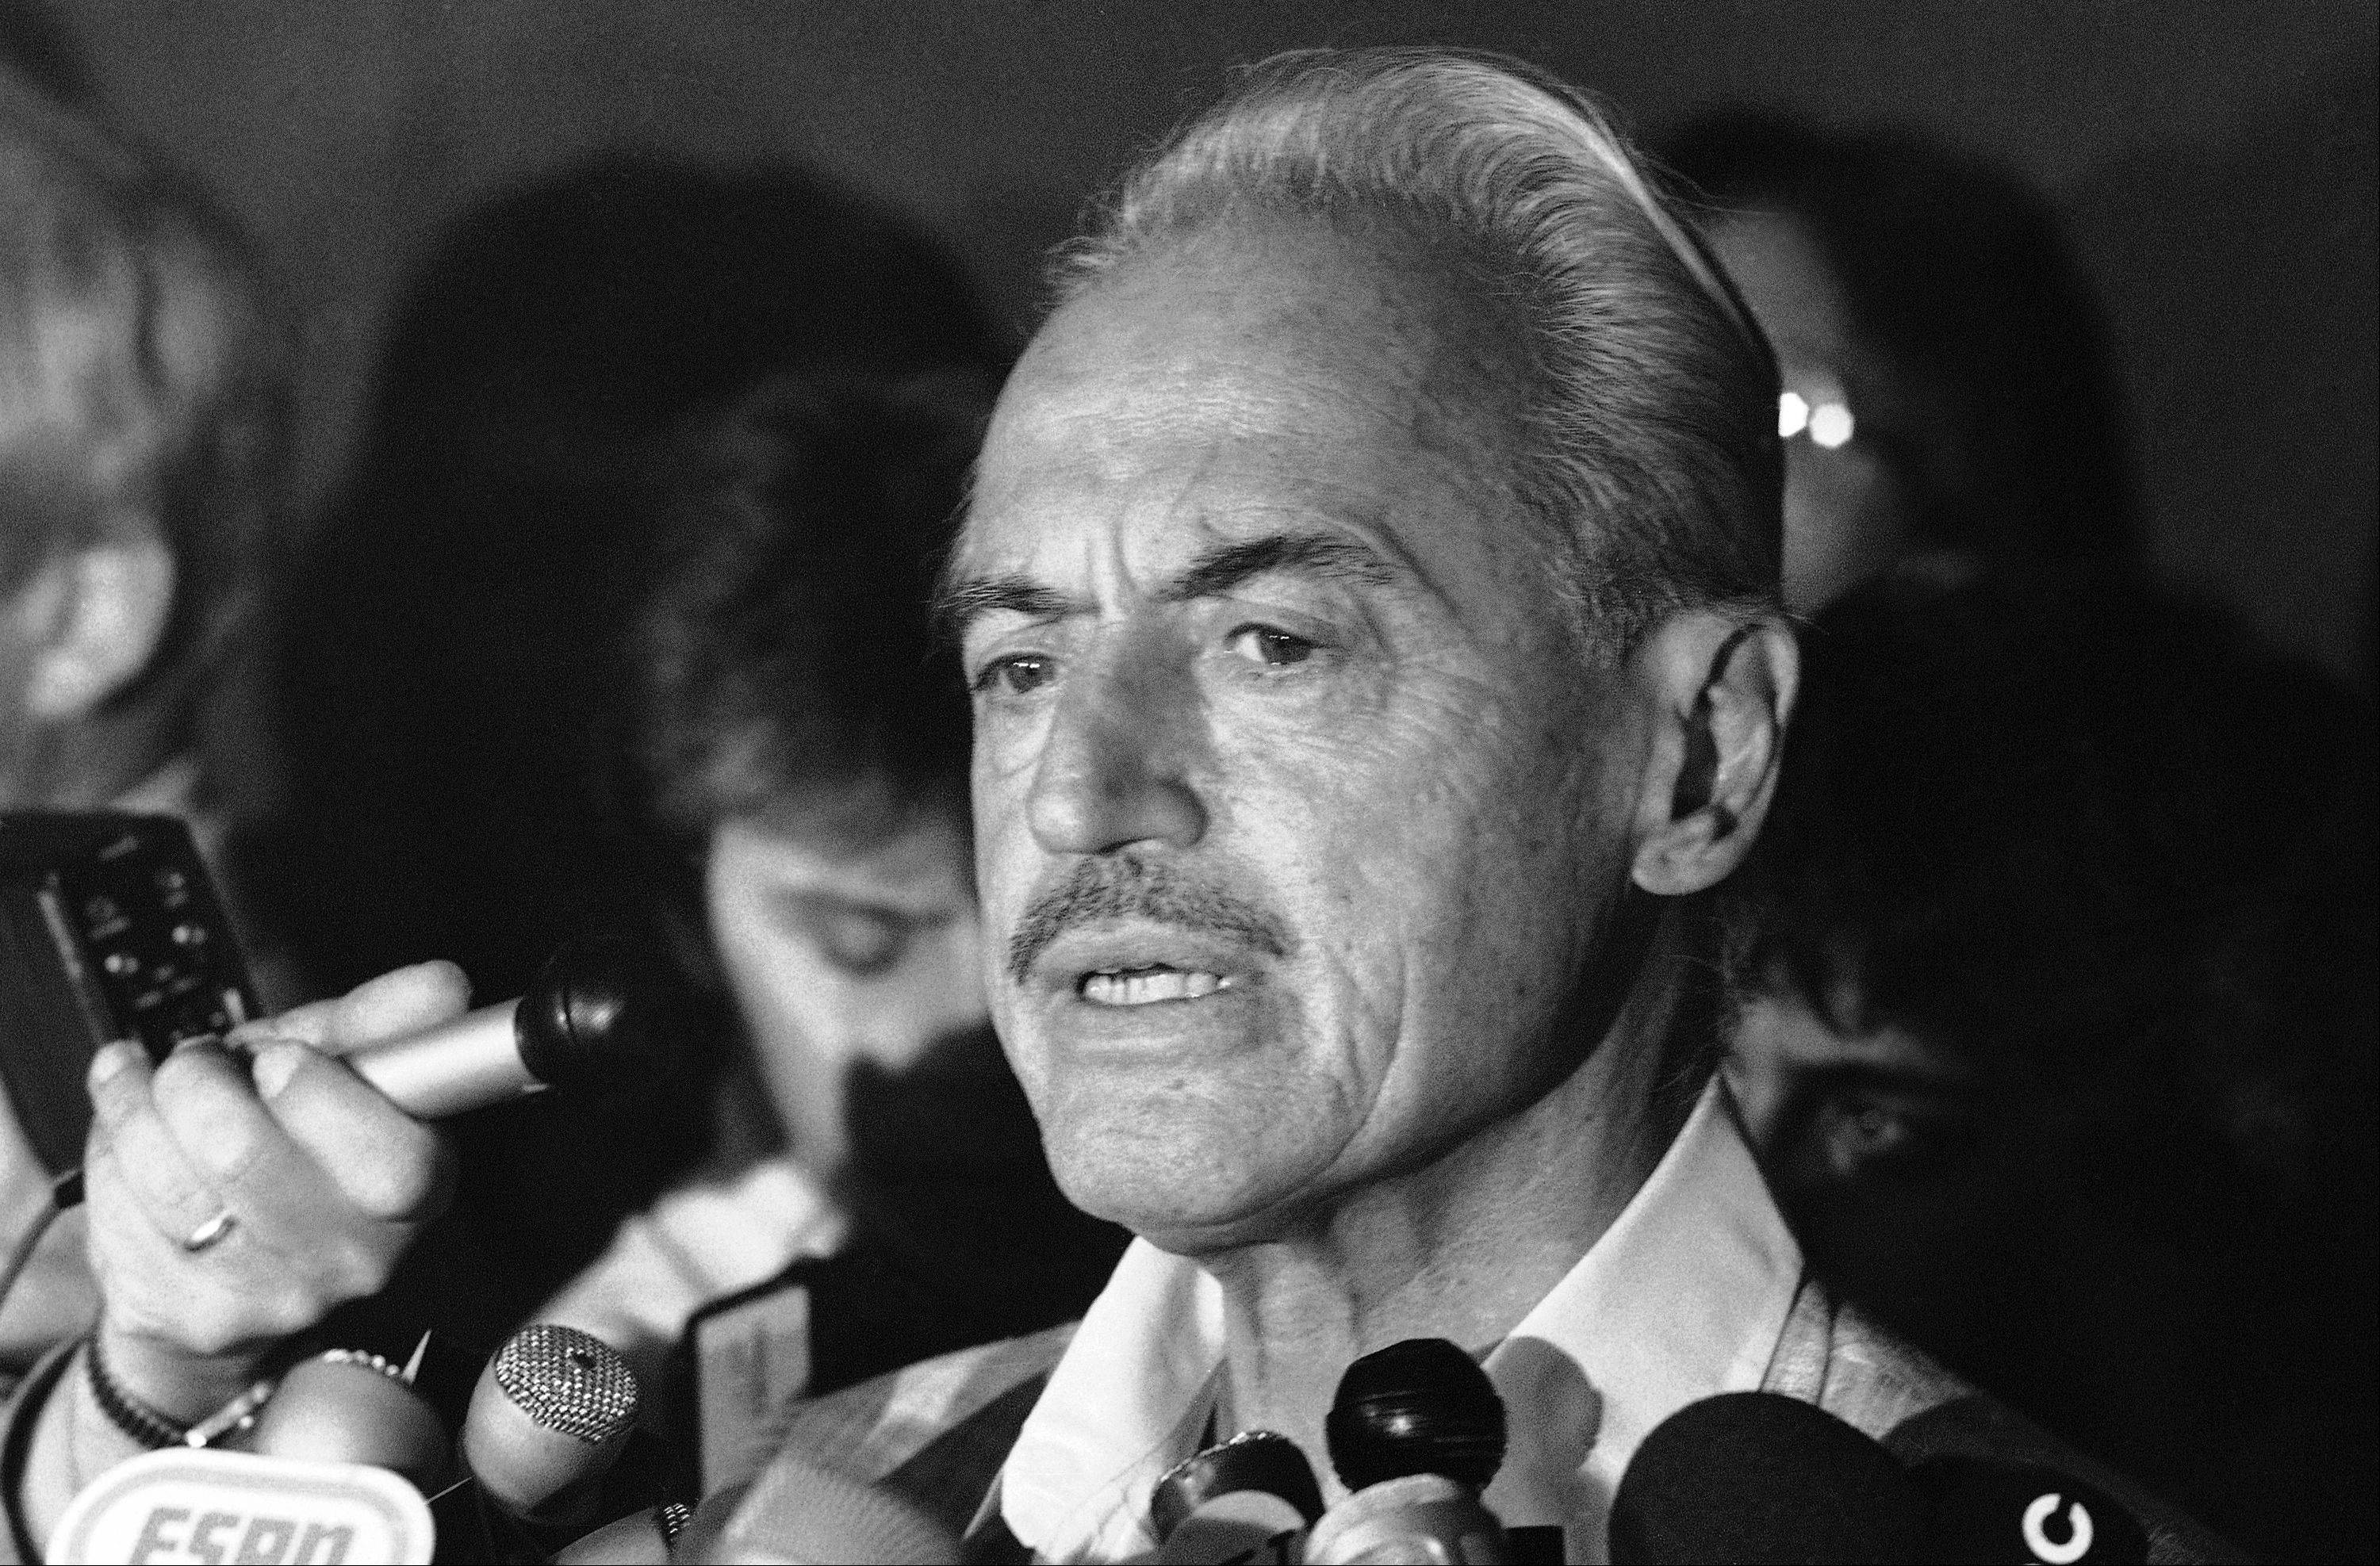 Baseball union leader Marvin Miller died Nov. 27 in New York. He was 95.